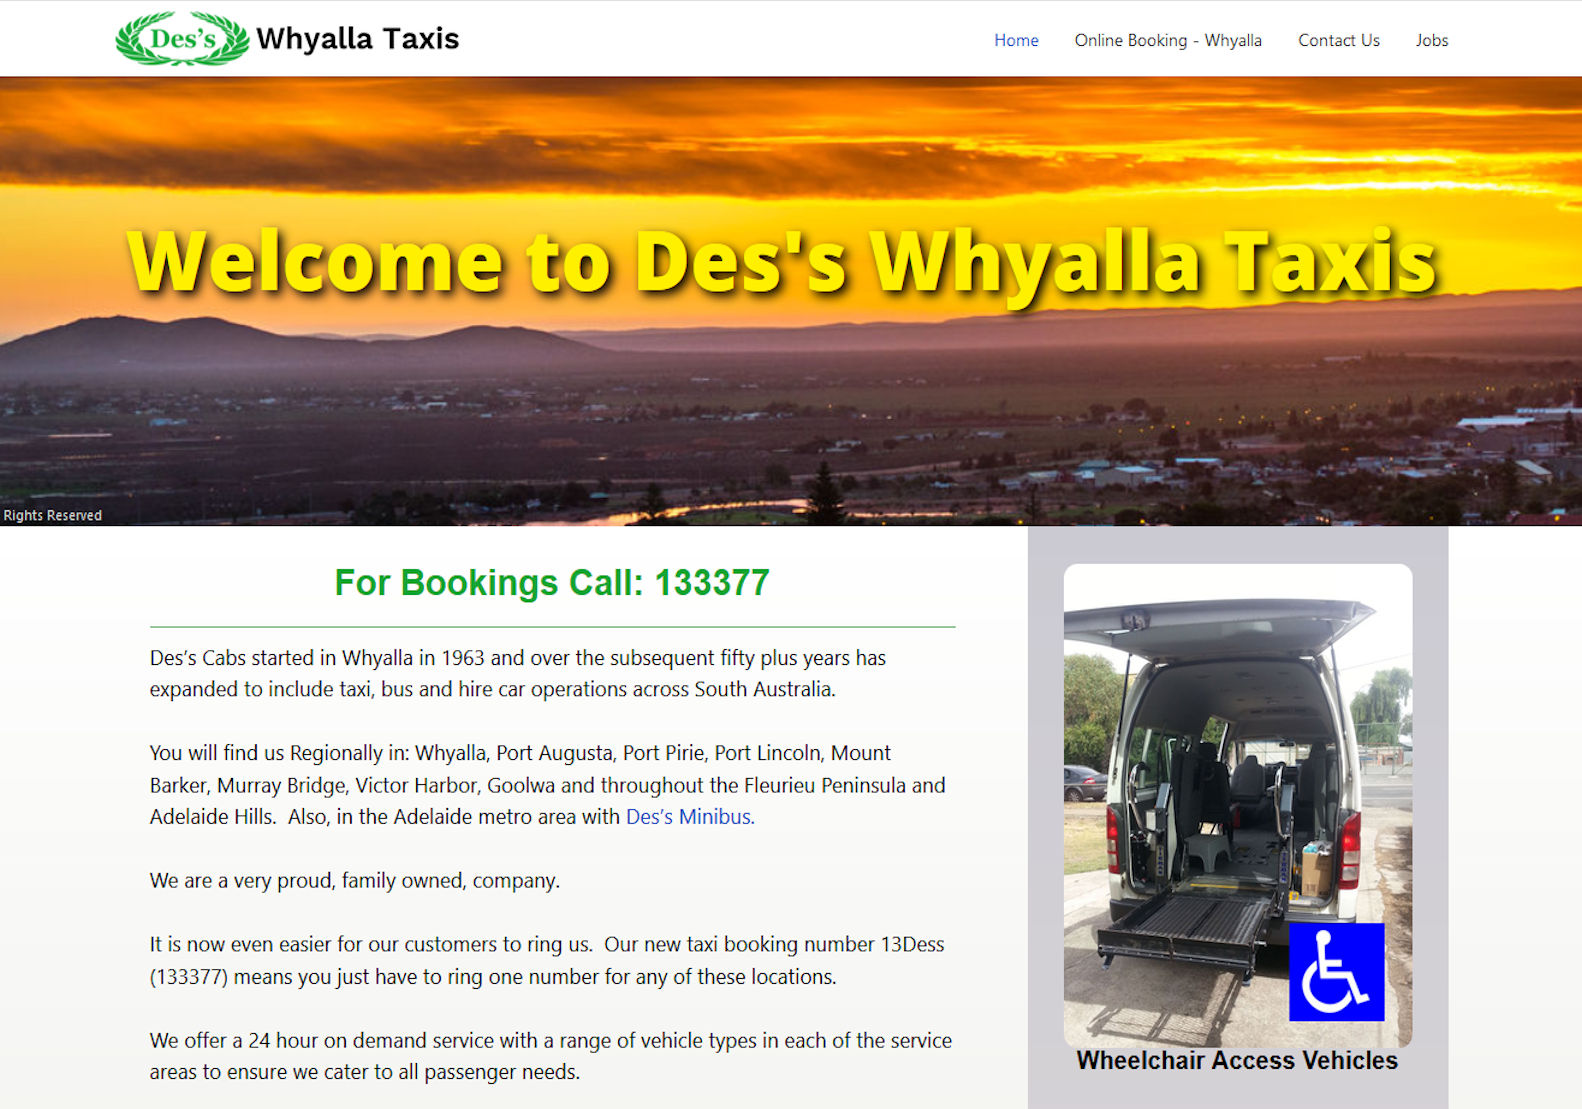 Des's Whyalla Taxis